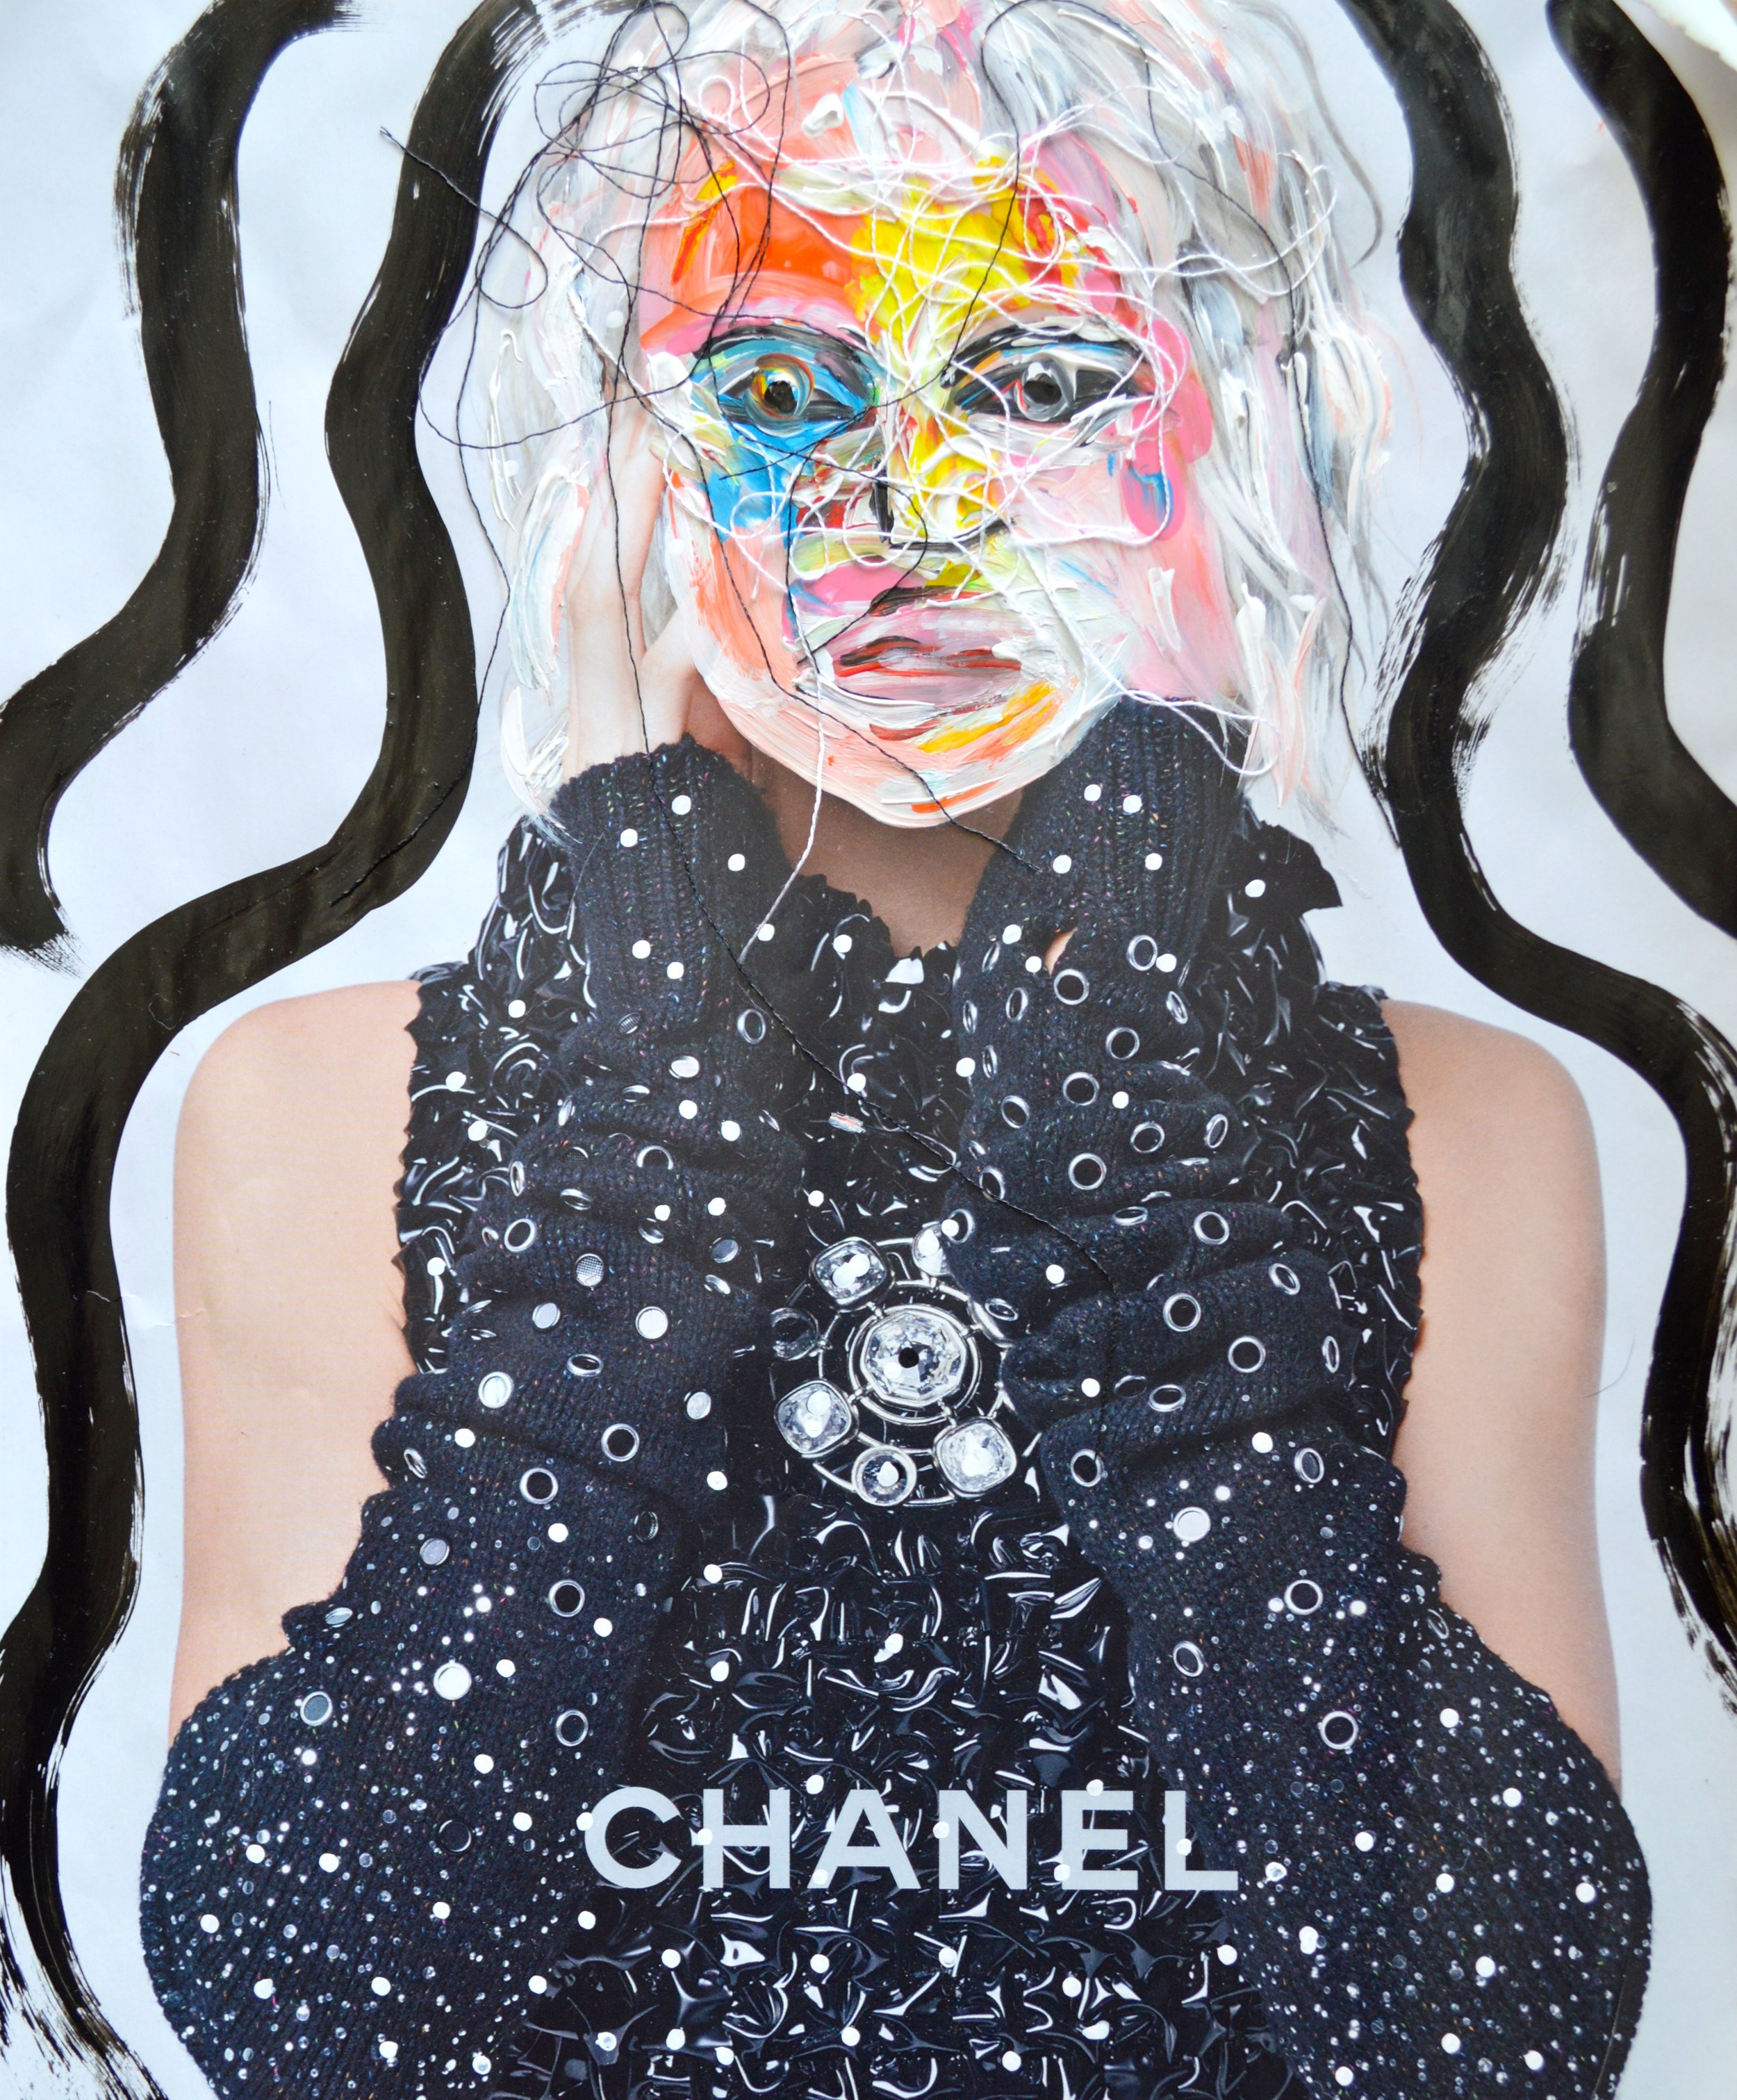 Survive (in Chanel)